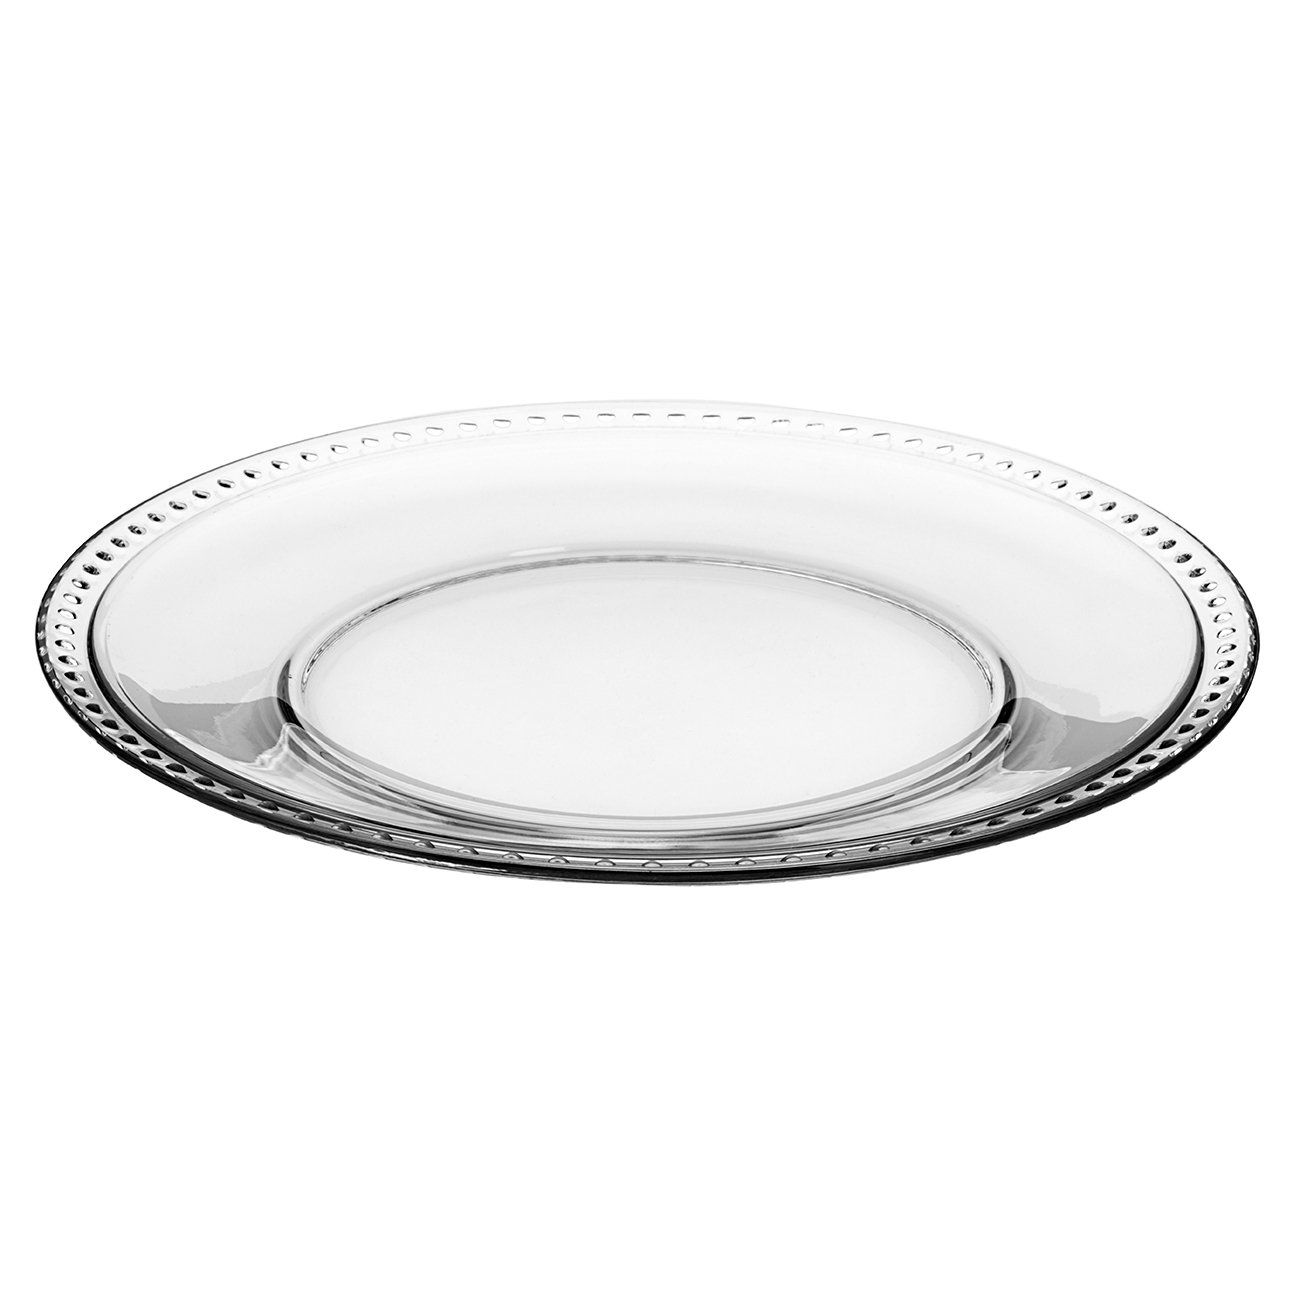 sc 1 st  HEB.com & Anchor Hocking Isabella Dinner Plate - Shop Dishes at HEB